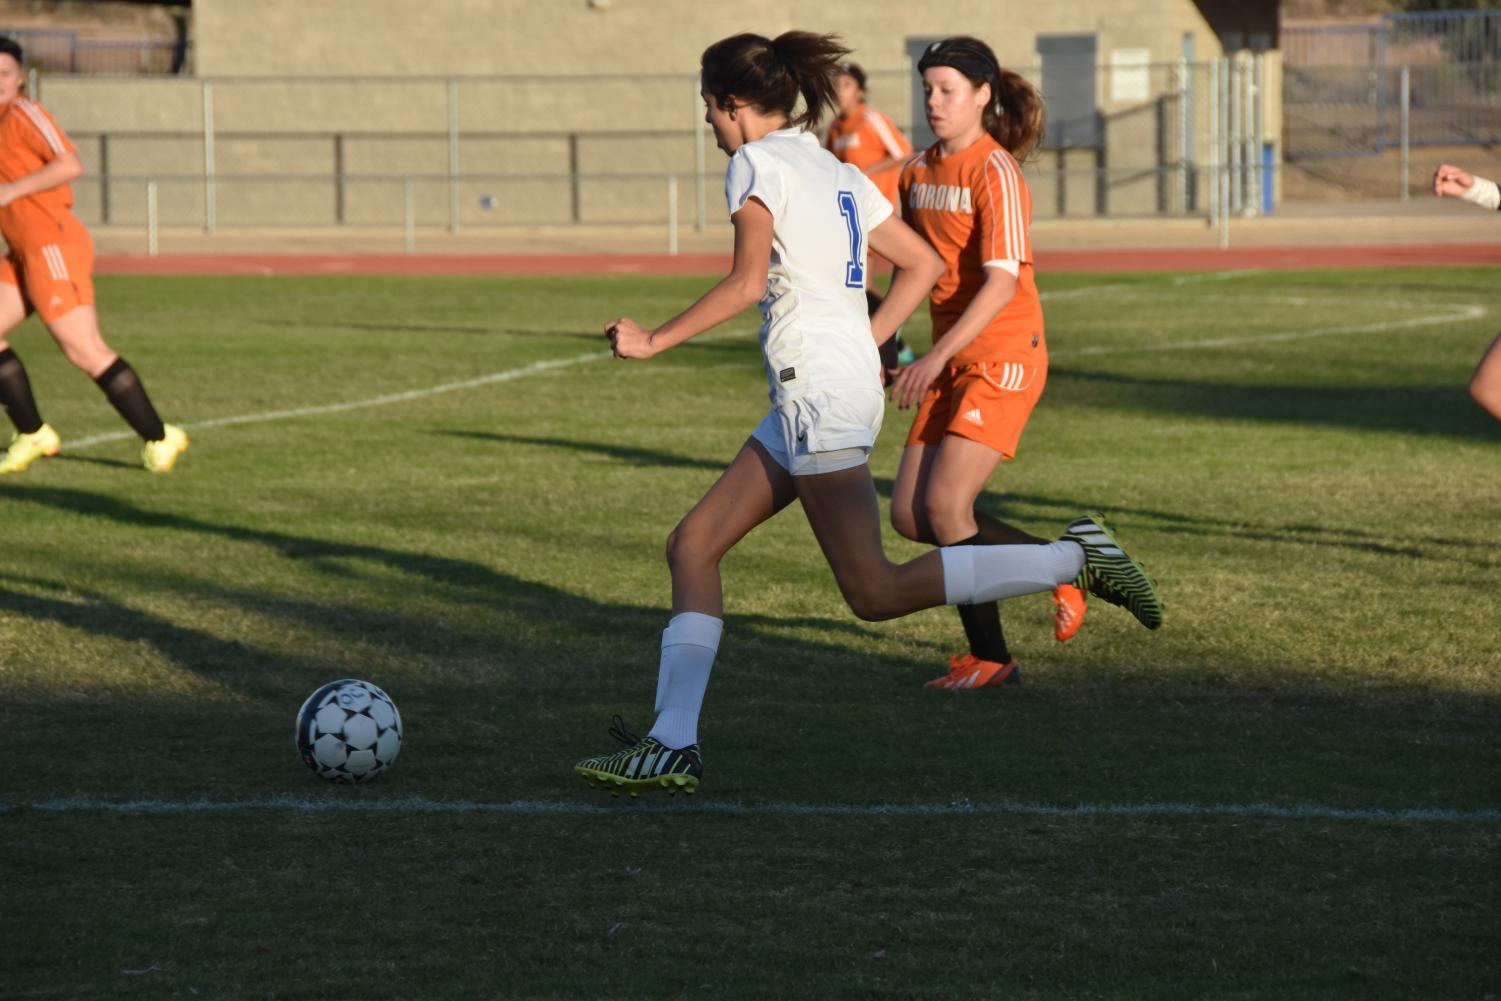 Girls soccer keep up their spirit as they jump into the new season.